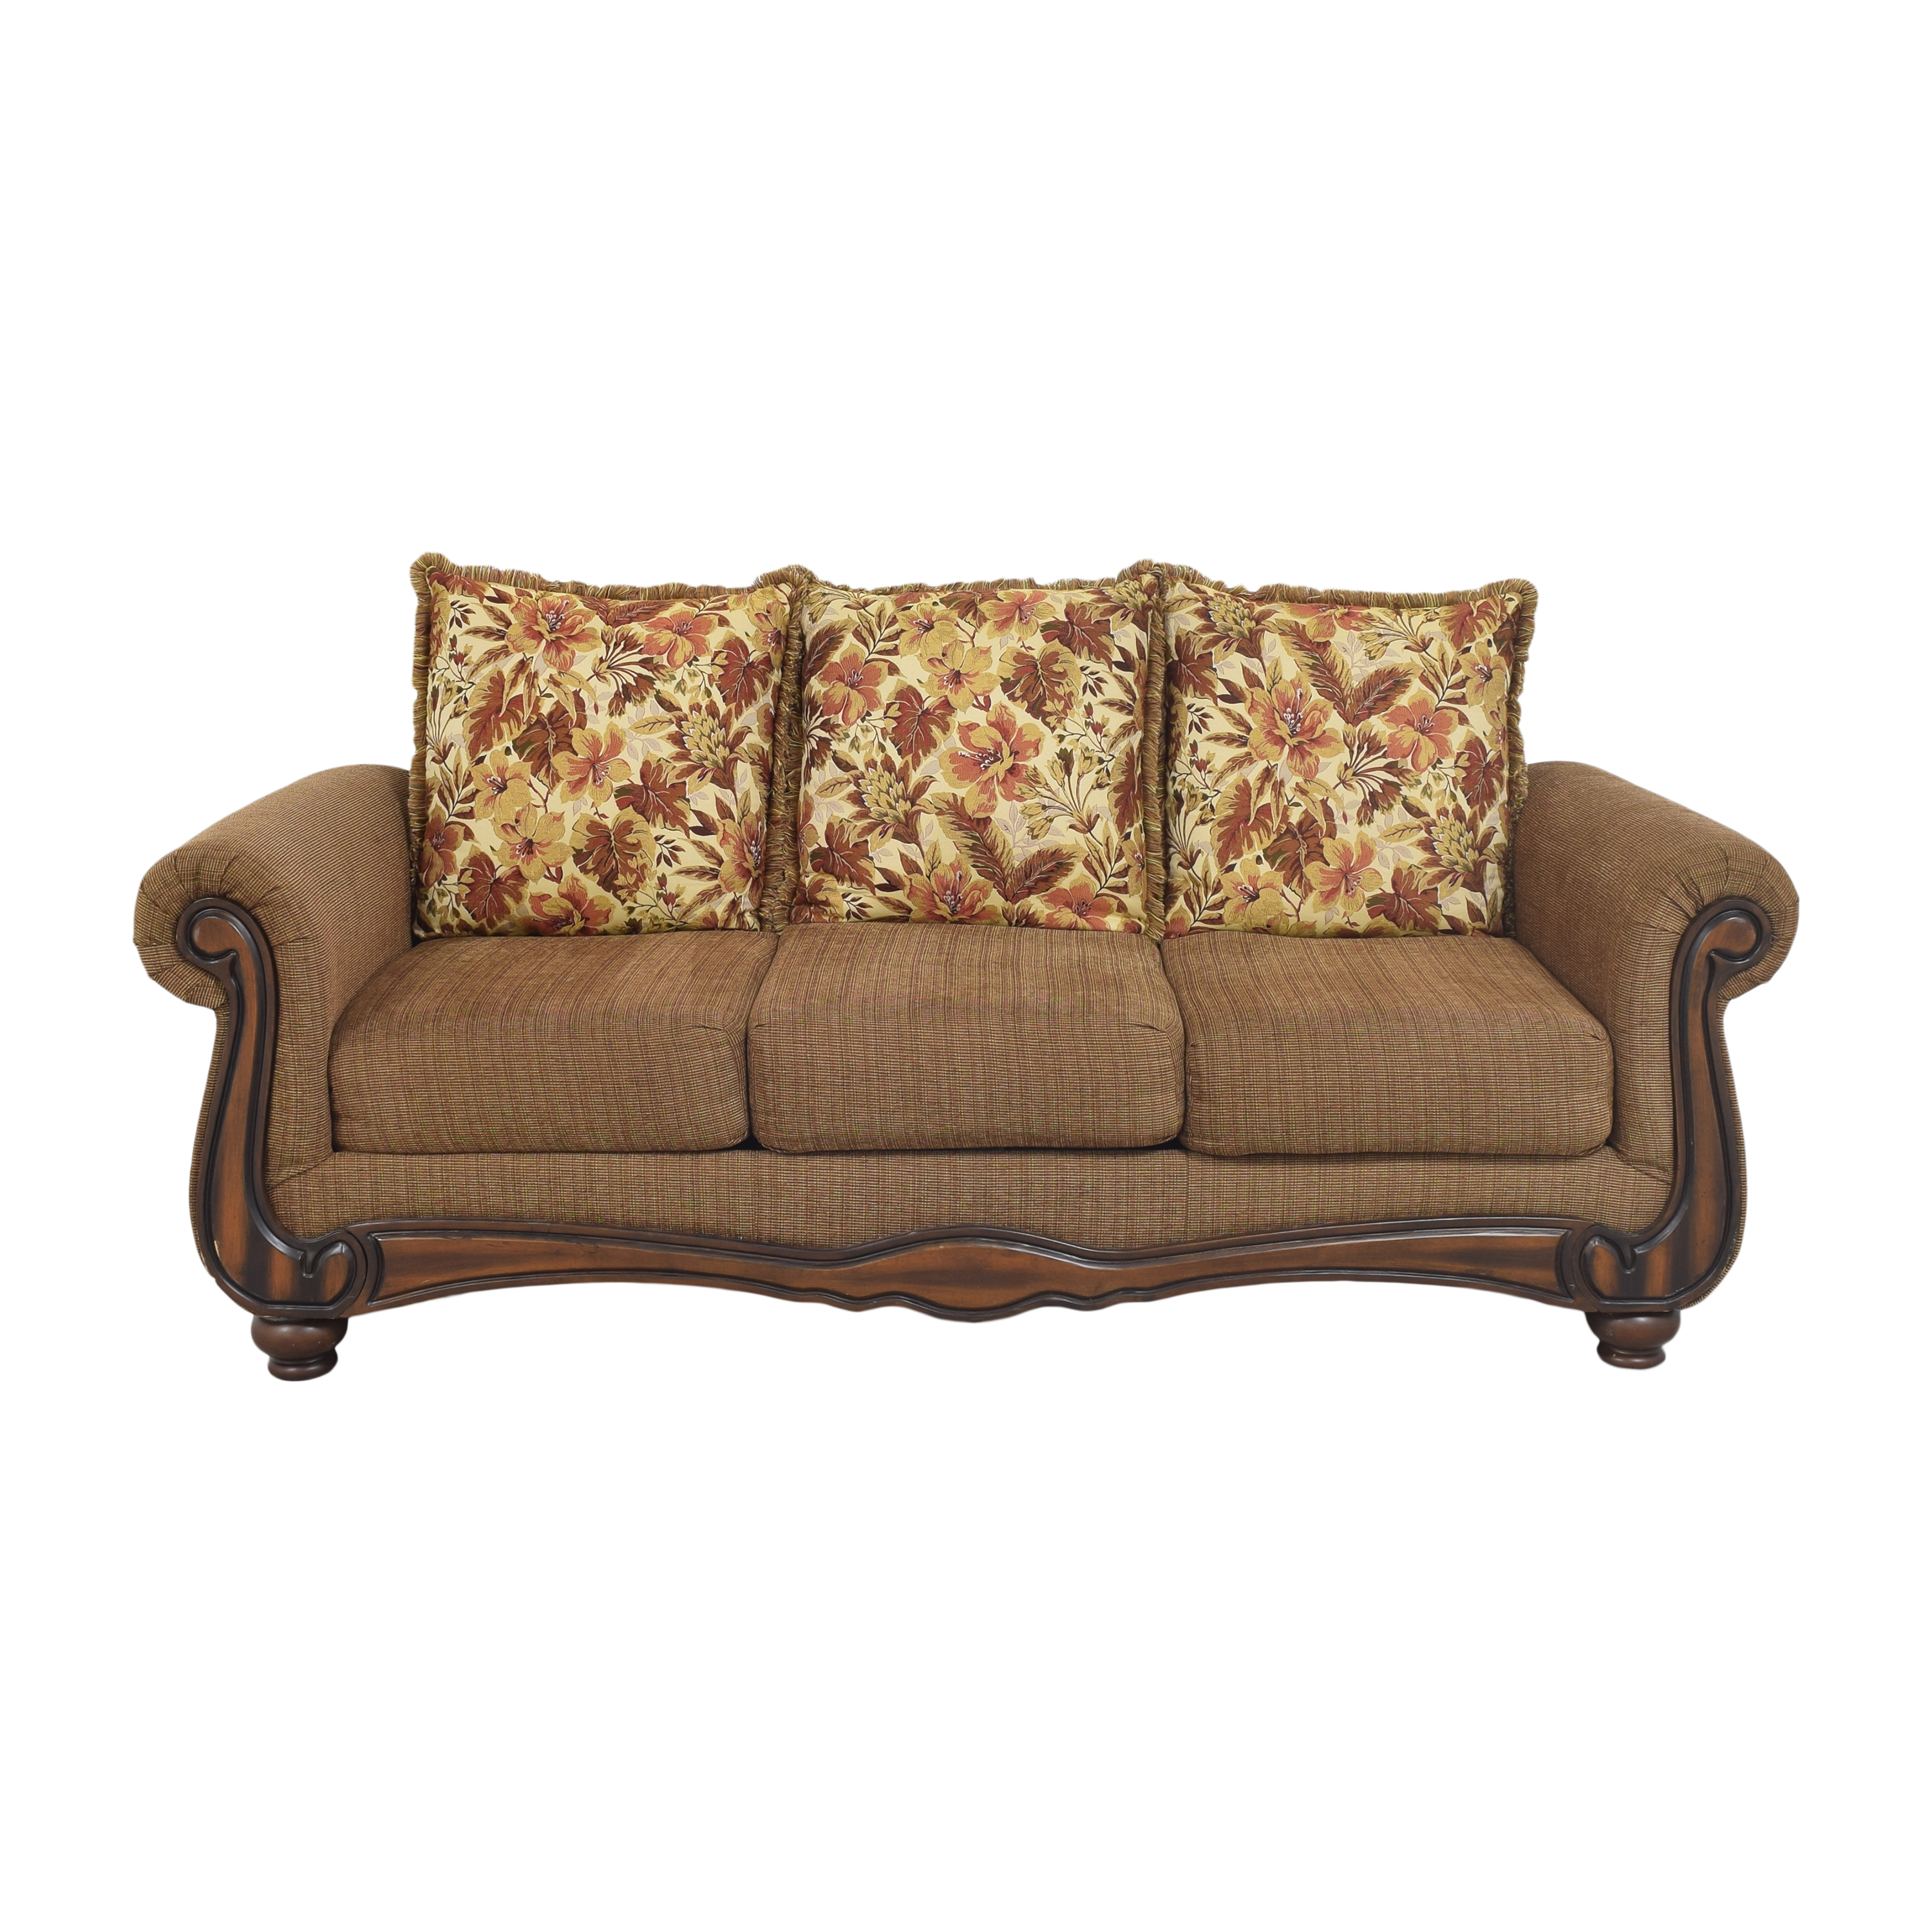 Hughes Furniture Hughes Furniture Roll Arm Sofa brown